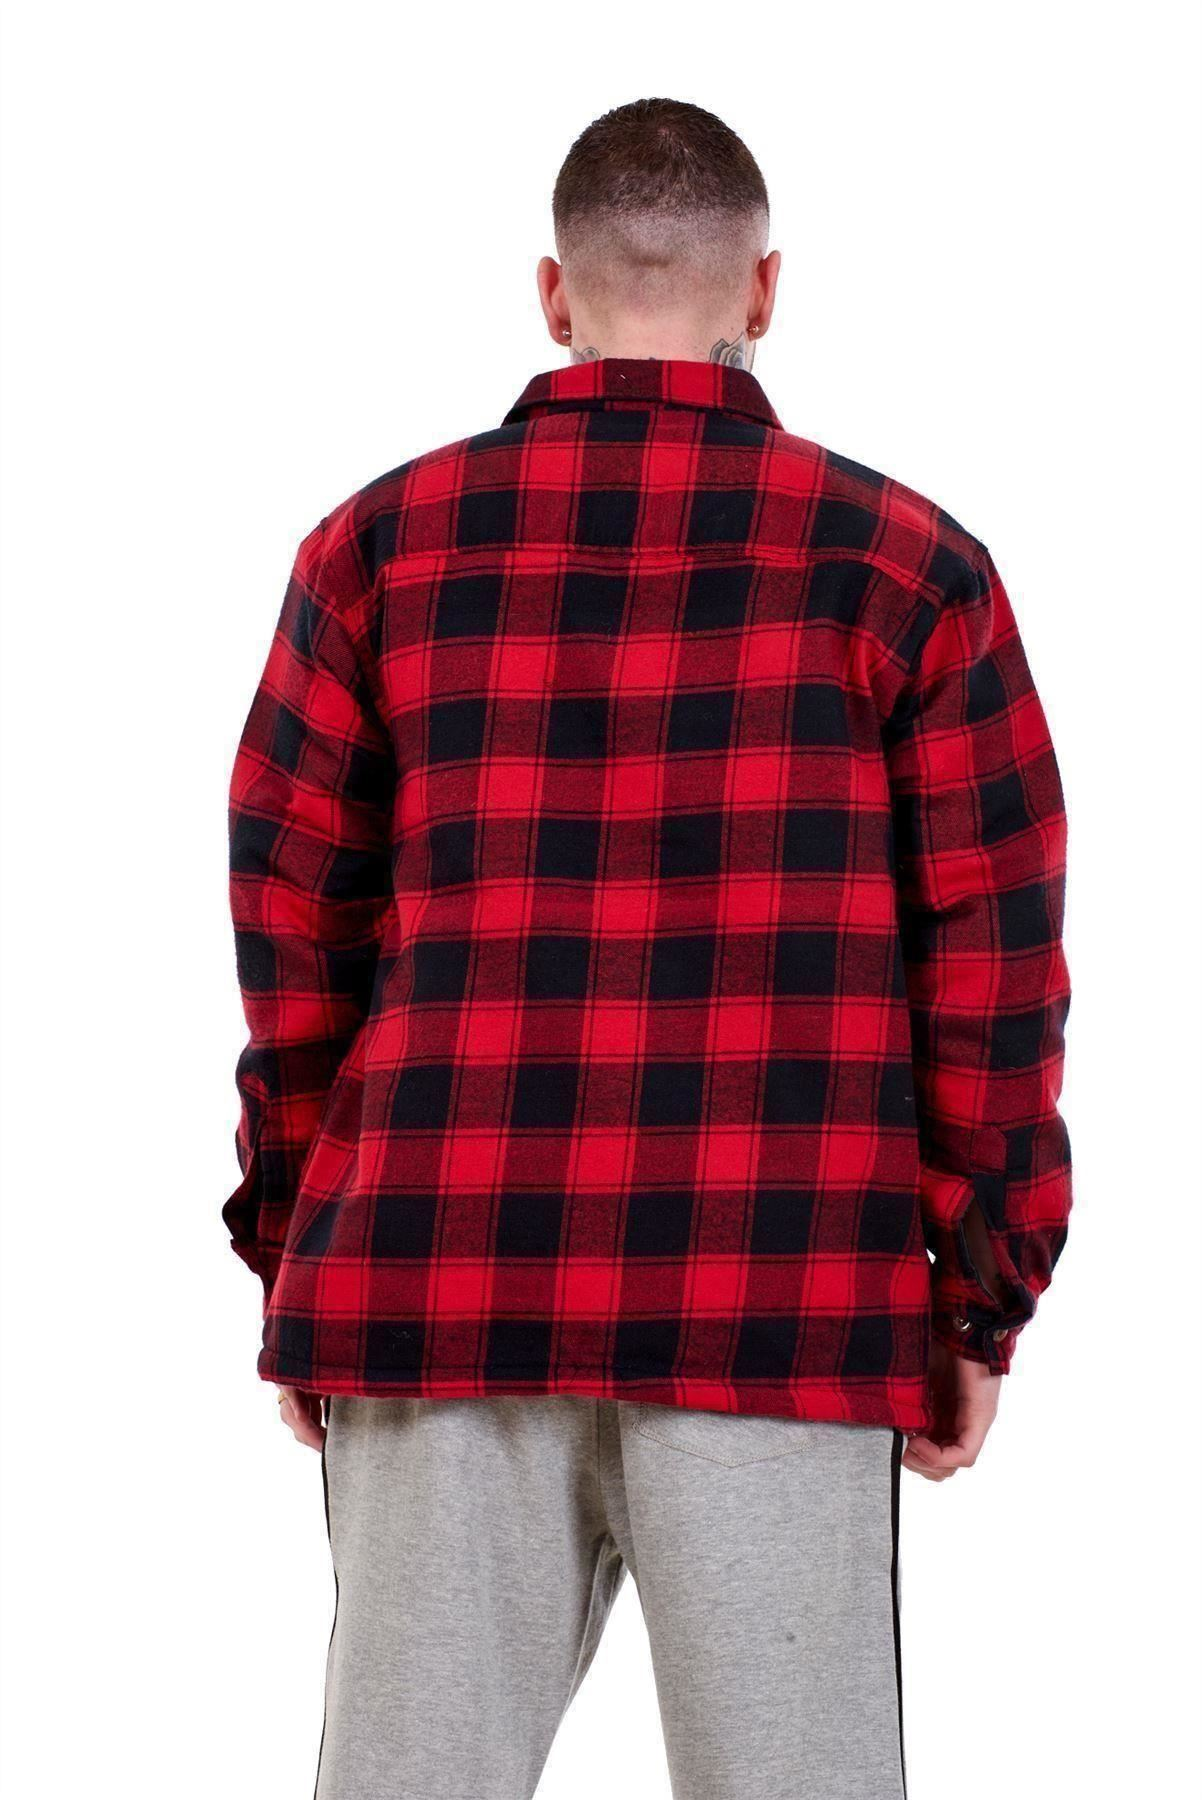 fast delivery great deals 2017 rock-bottom price Details about Mens Flannel Padded Work Shirt Yarn Dyed Quilted Lumberjack  Jacket Regular & Big